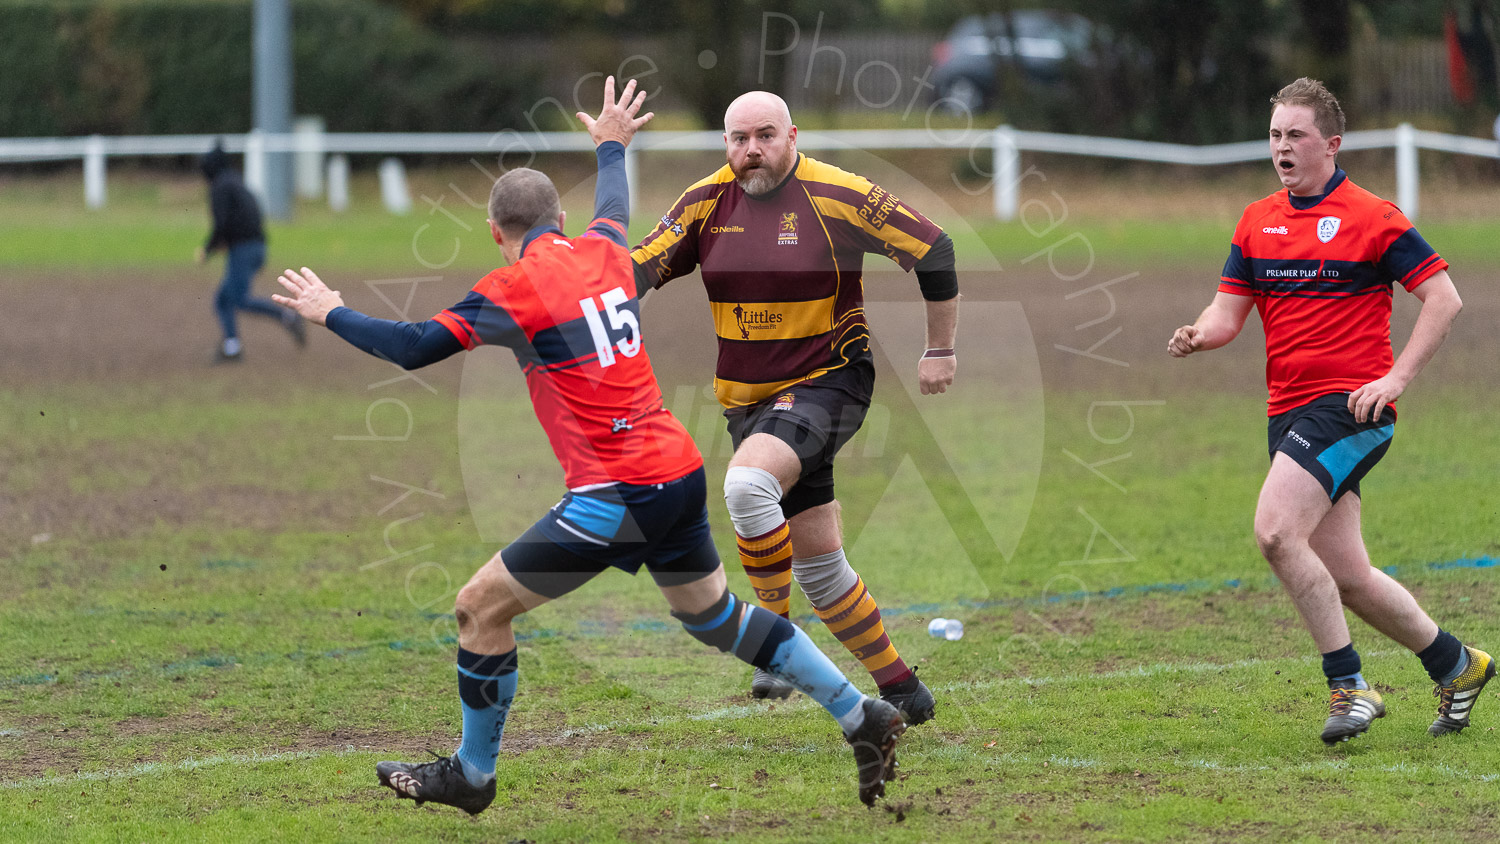 20181027 Amp Extras vs St Neots 2nd XV #2459